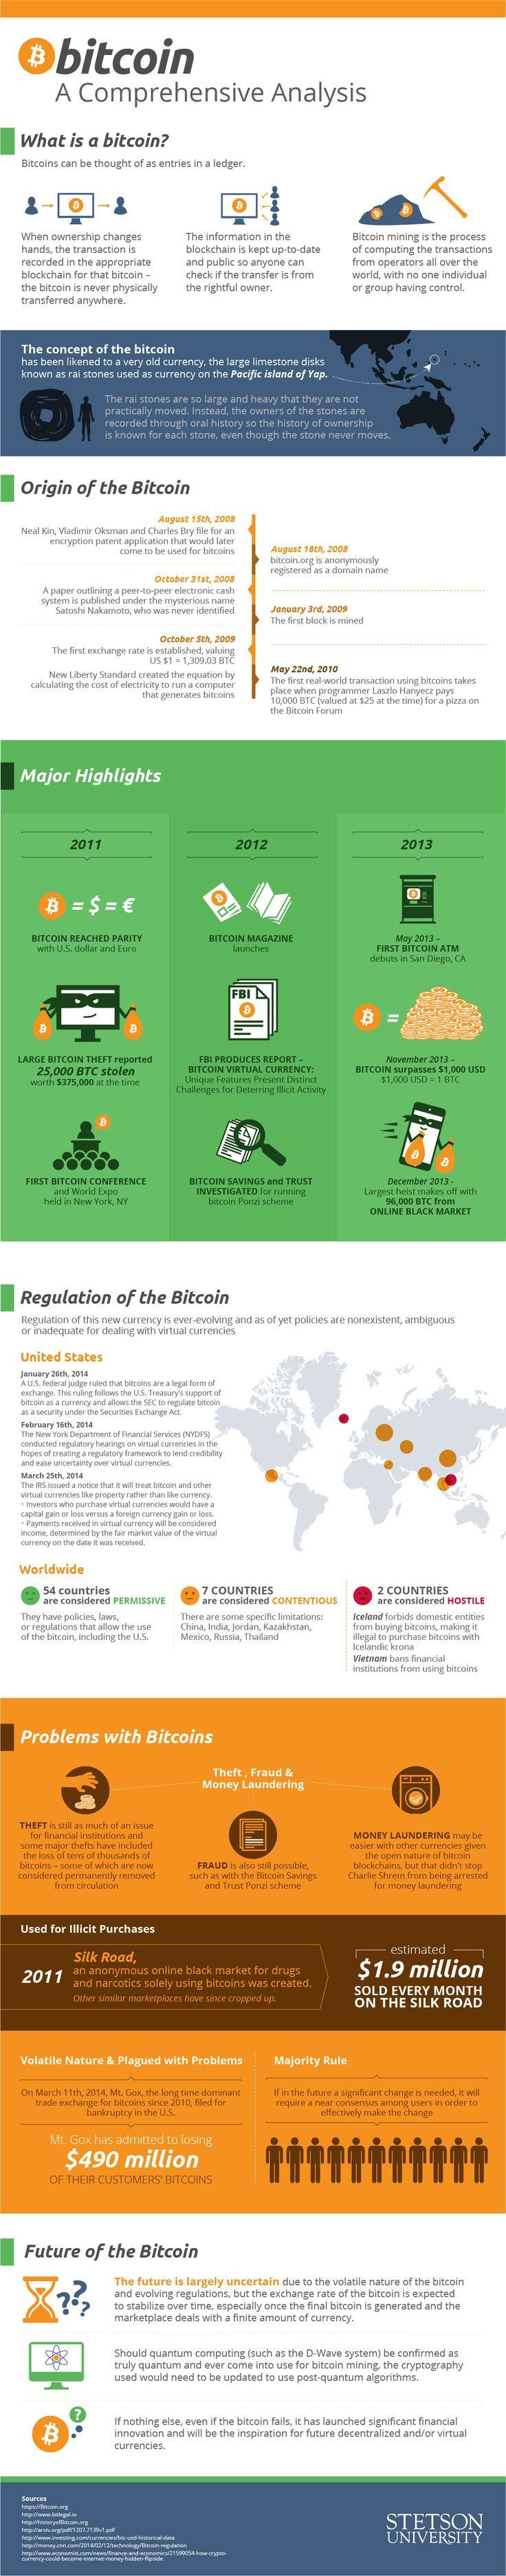 A group of students at Stetson University's Online Master of Accounting Degree program created this comprehensive infographic to help explain the digital currency #infographic #bitcoin #crypto #cryptocurrency #money #investing #makemoney #picture #cool #tech #geeky #technology #blockchain #future